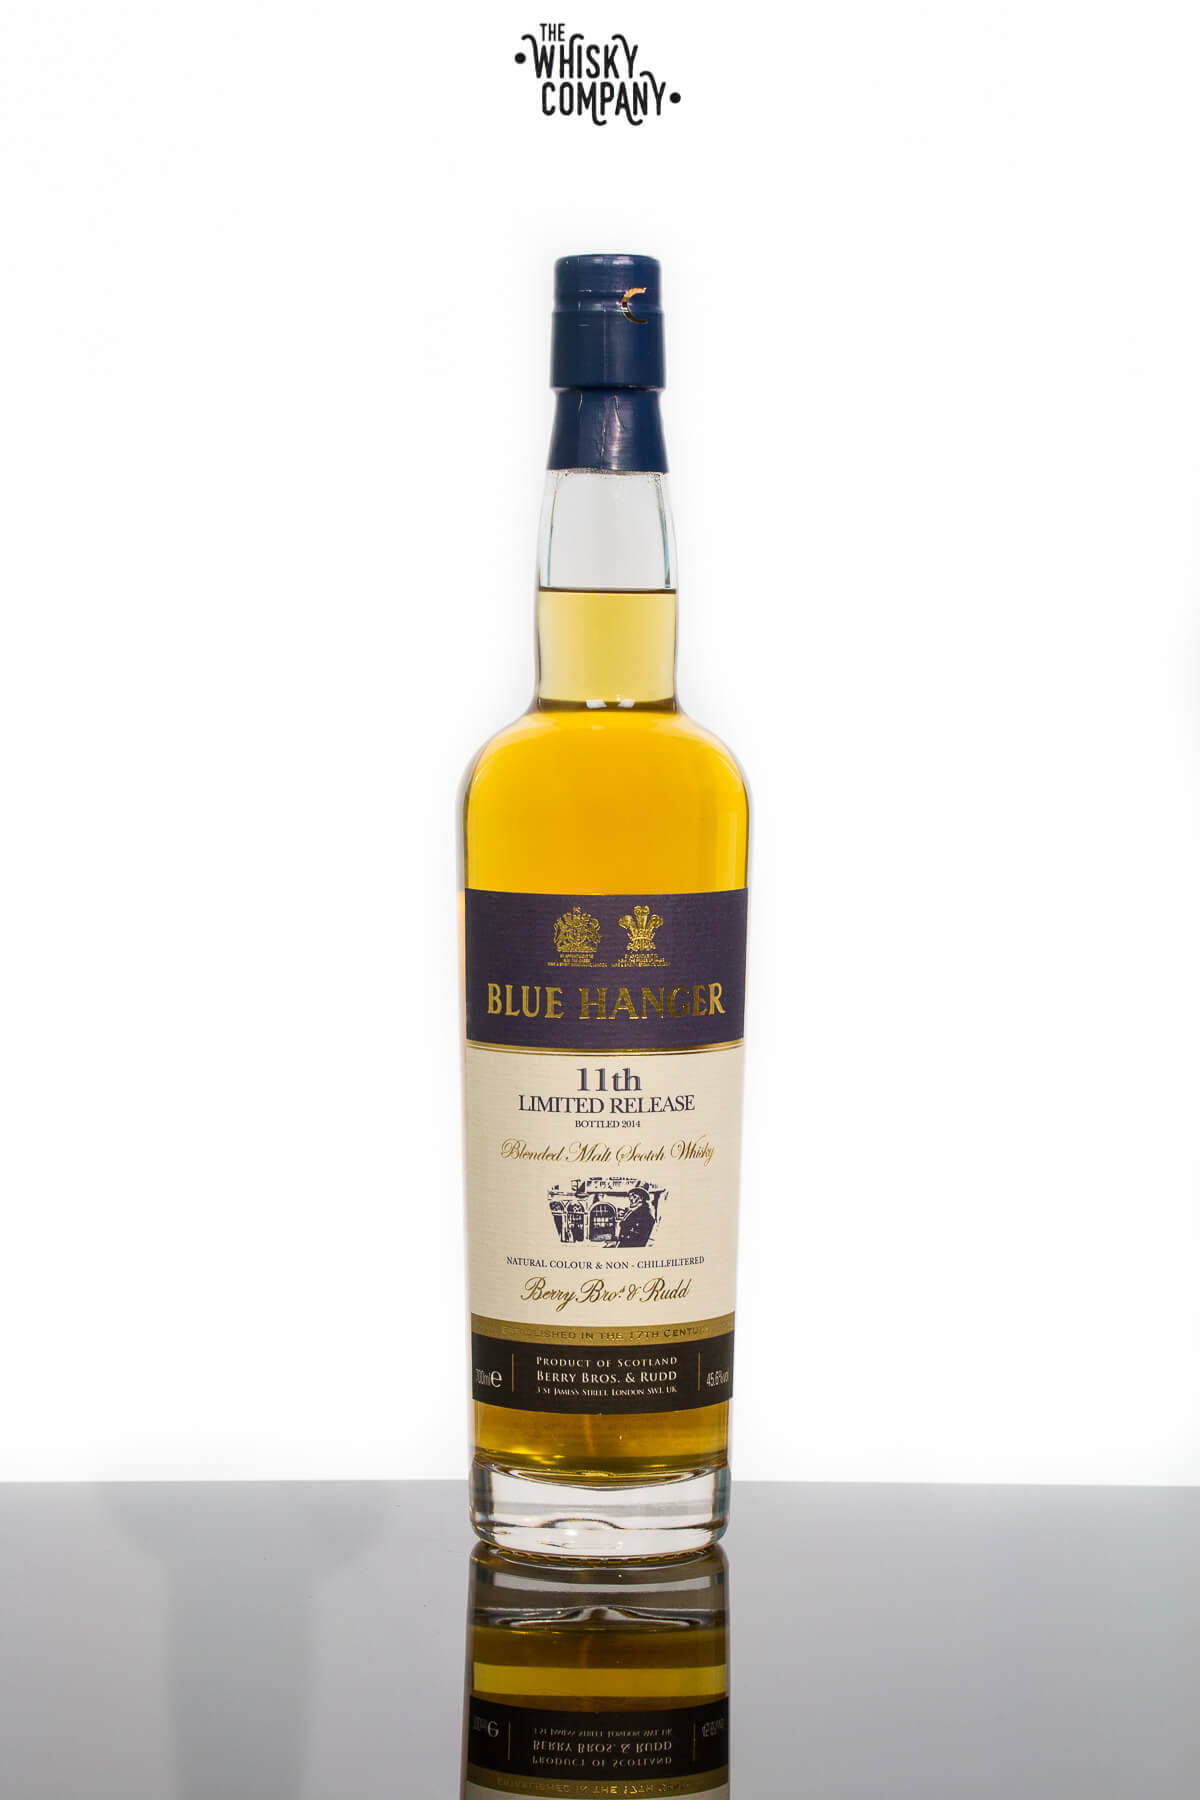 Berry Bros. & Rudd Blue Hanger 11th Release Blended Malt Scotch Whisky